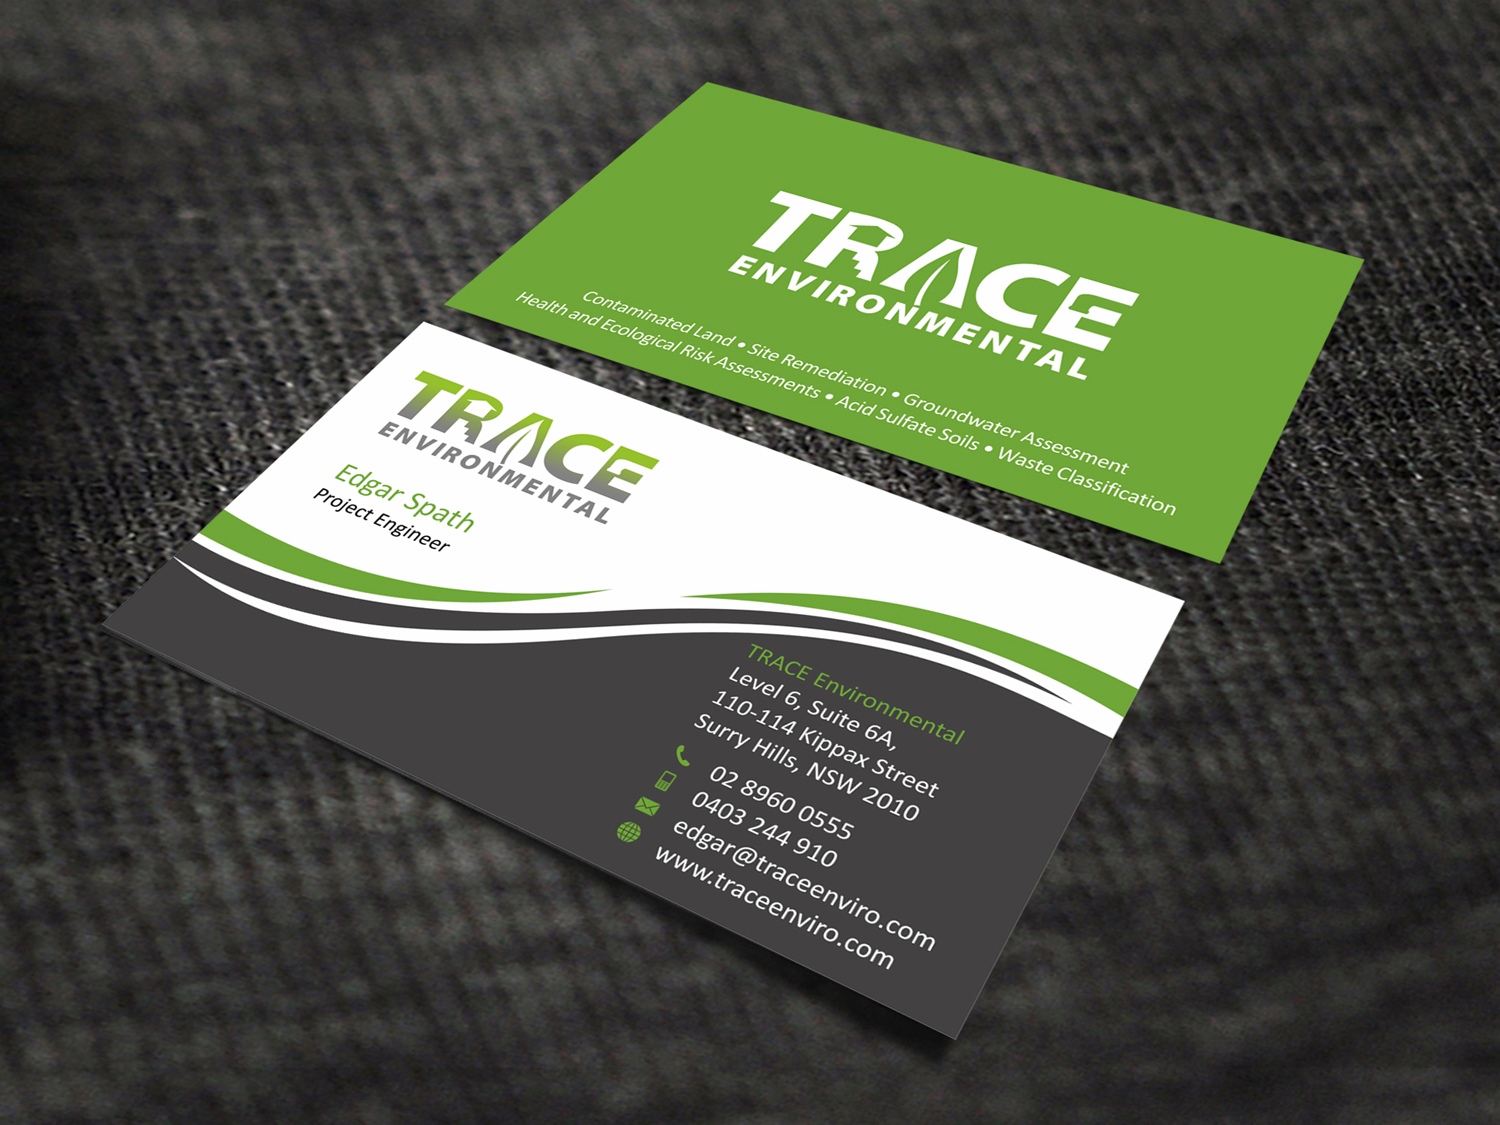 Modern professional business card design for trace environmental by business card design by skydesign for trace environmental needs an upgrade to its current business cards colourmoves Images